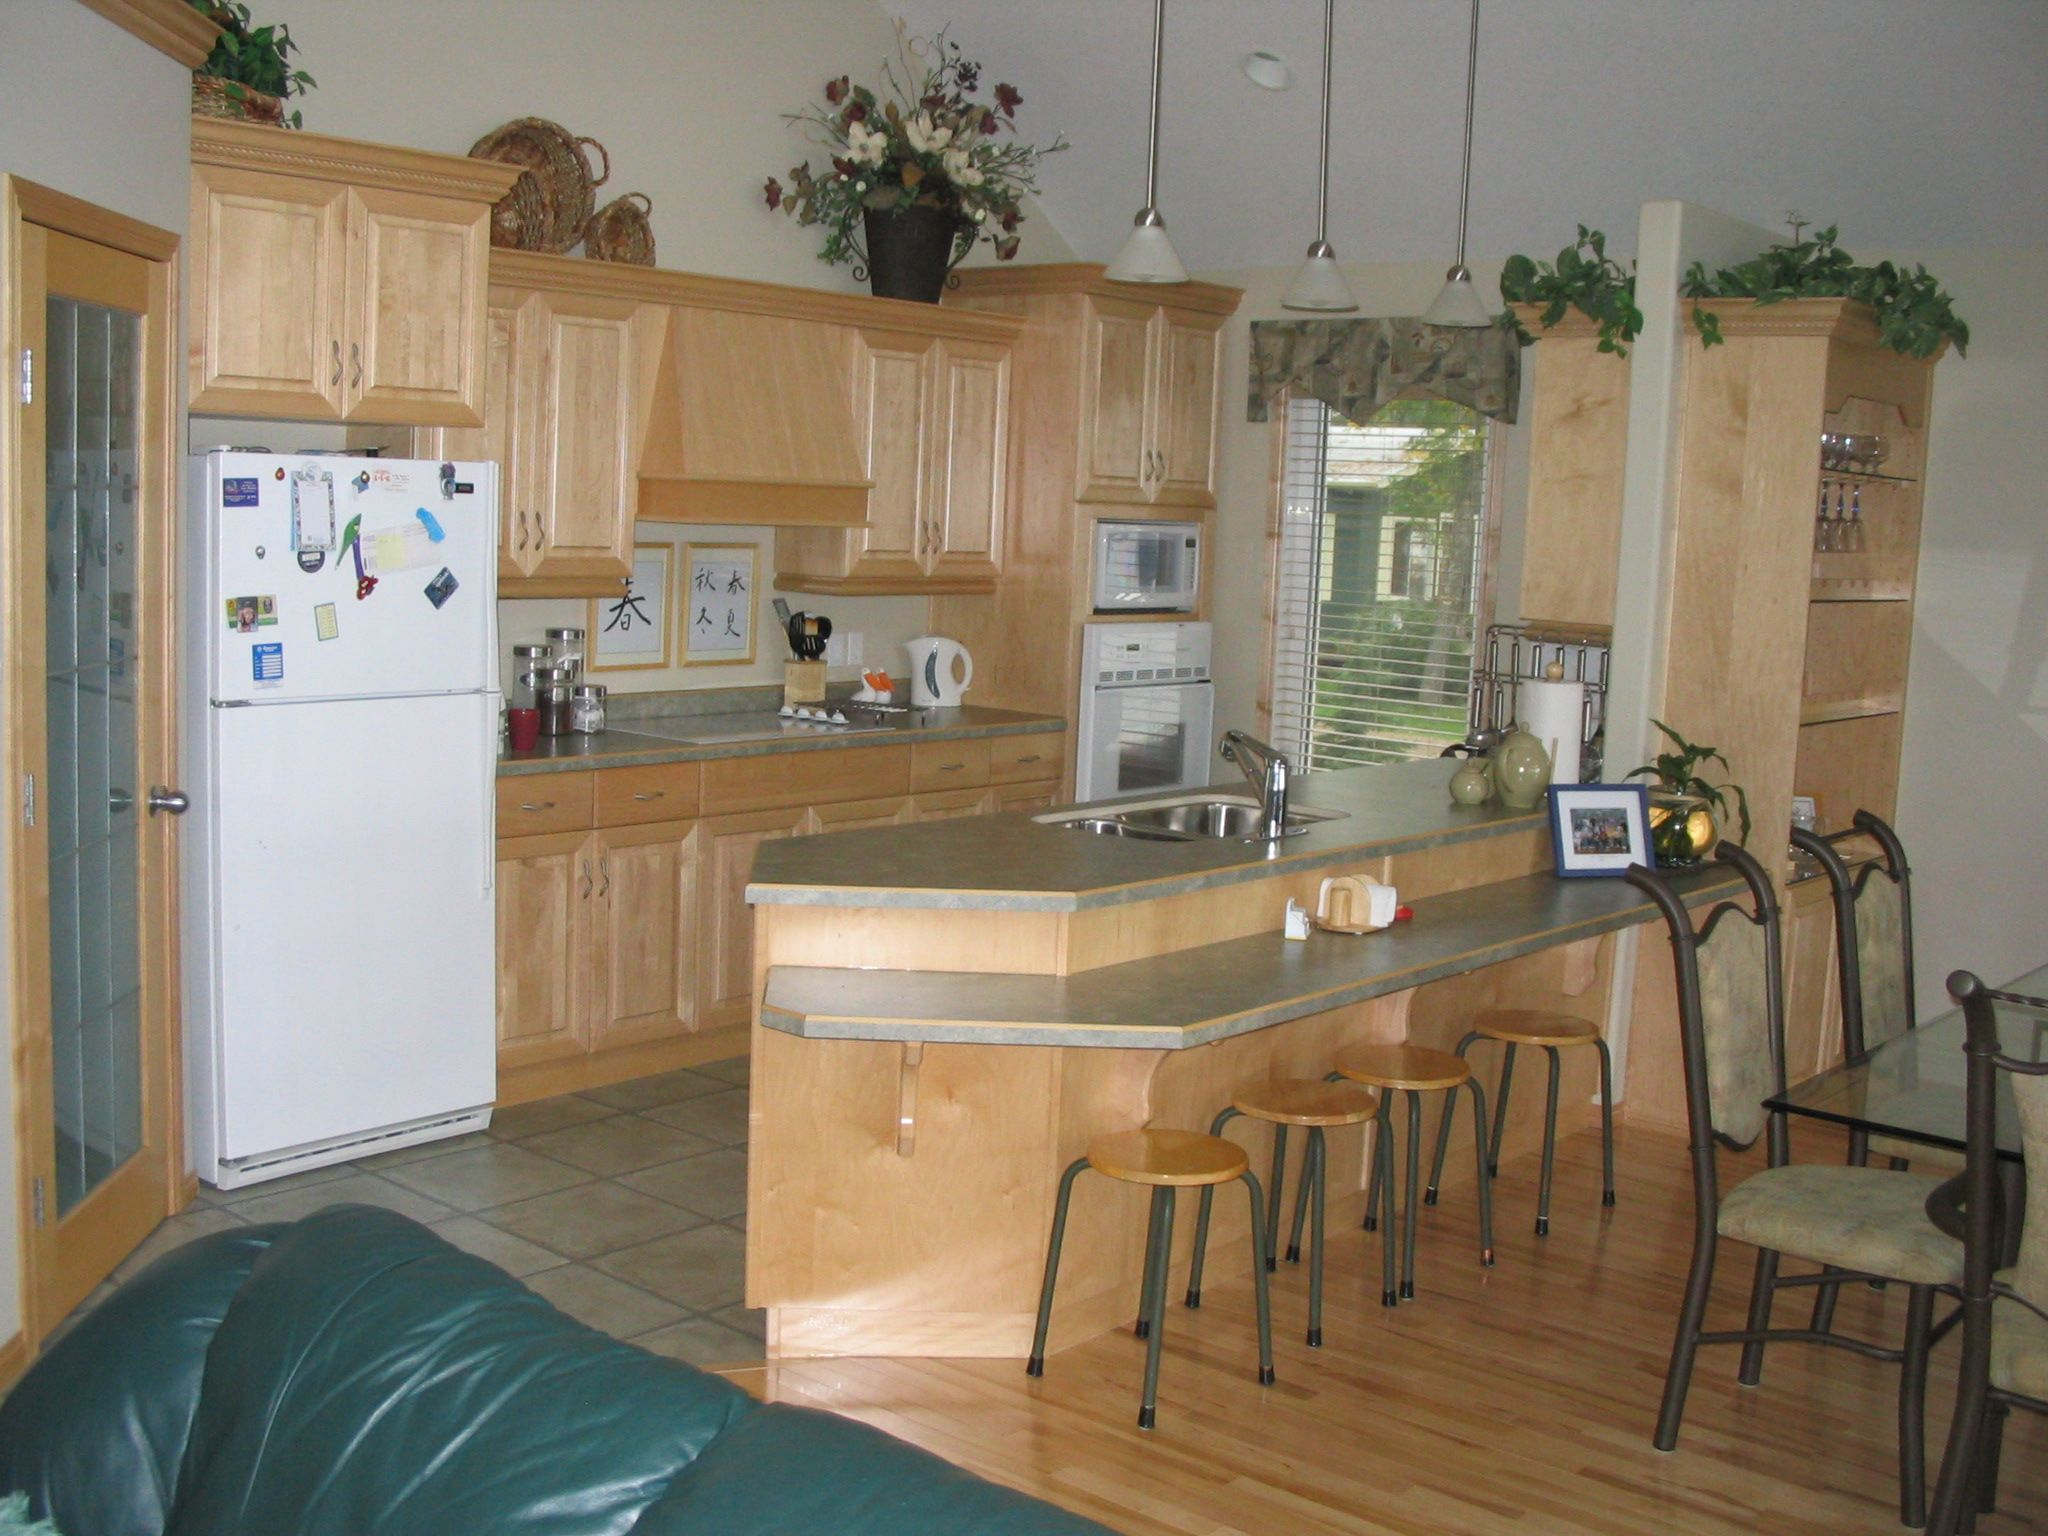 Kitchen Base Cabinets With Countertop Cabinets Maple Natural Countertops Arborite Laminate